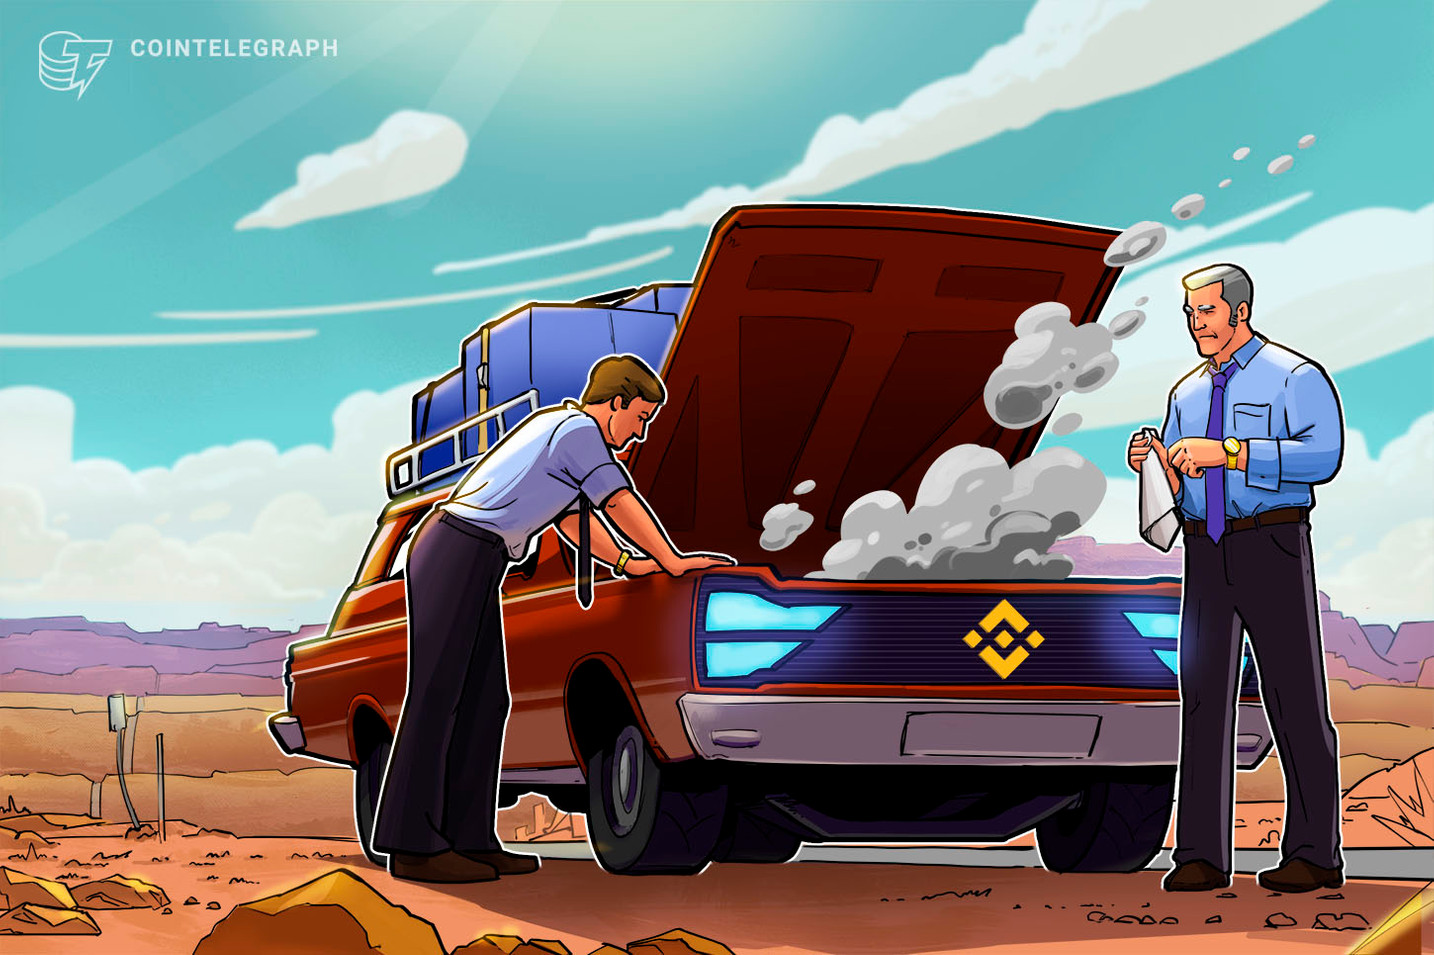 Binance Halts Trading to Resolve Technical Problem